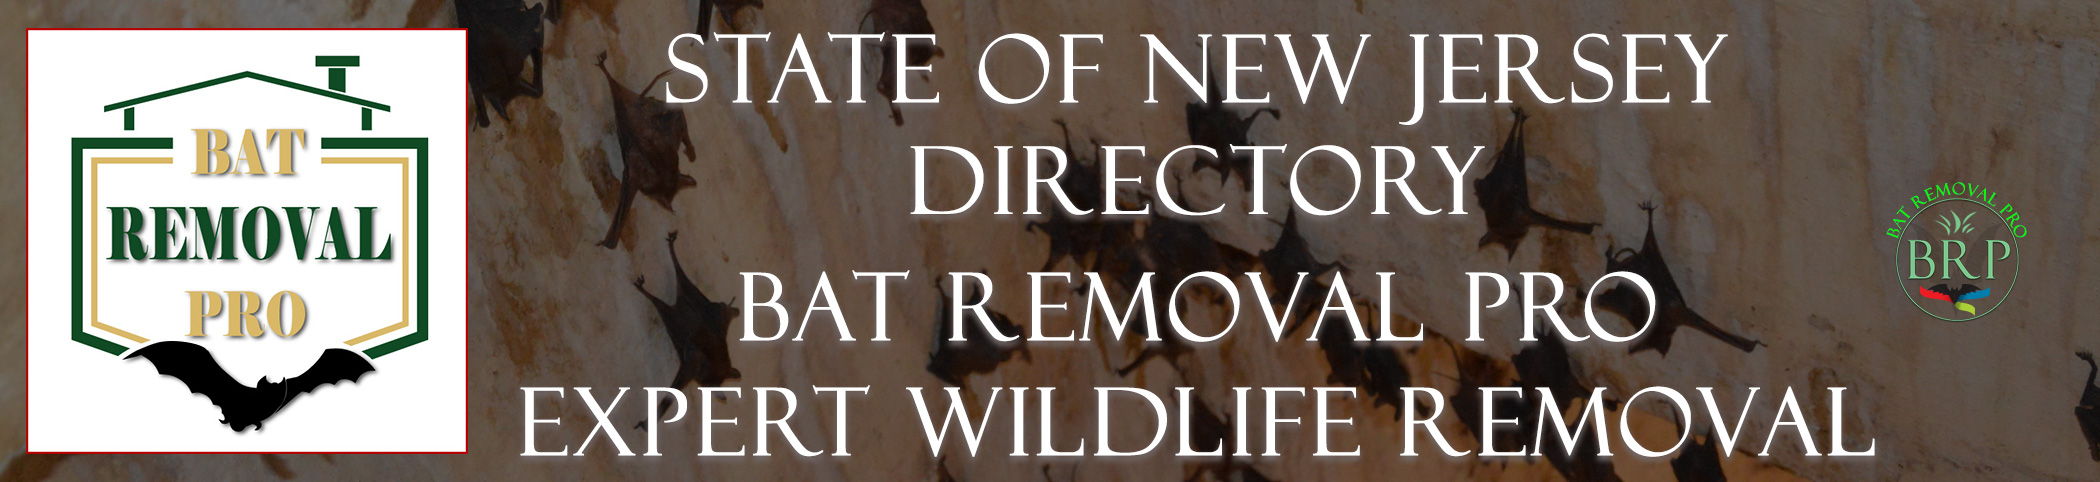 NEW-JERSEY-bat-removal-at-bat-removal-pro-header-image